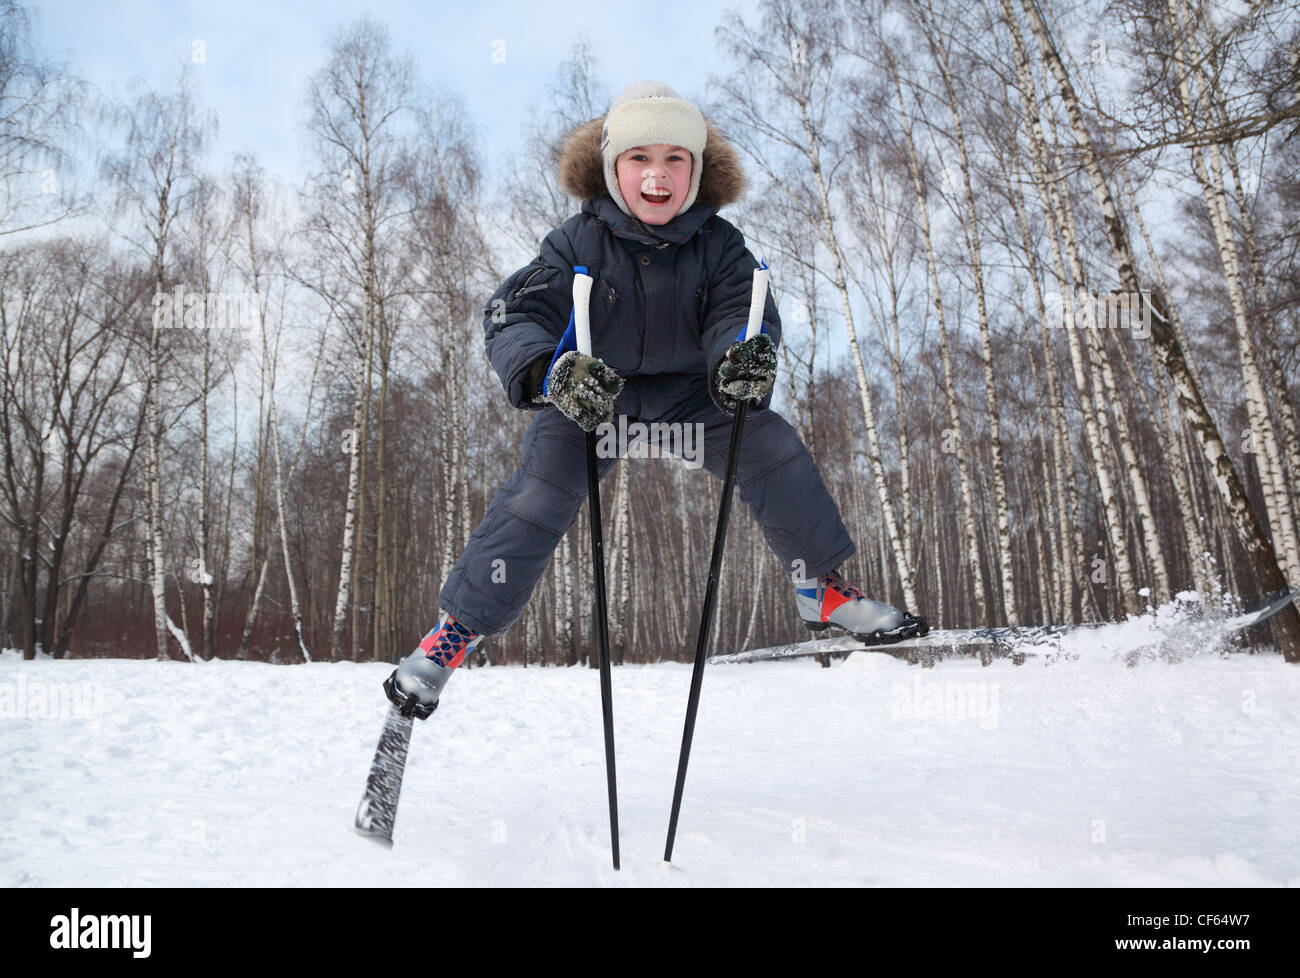 Young boy jumps and spreads legs on cross-country skis inside winter forest at sunny day - Stock Image